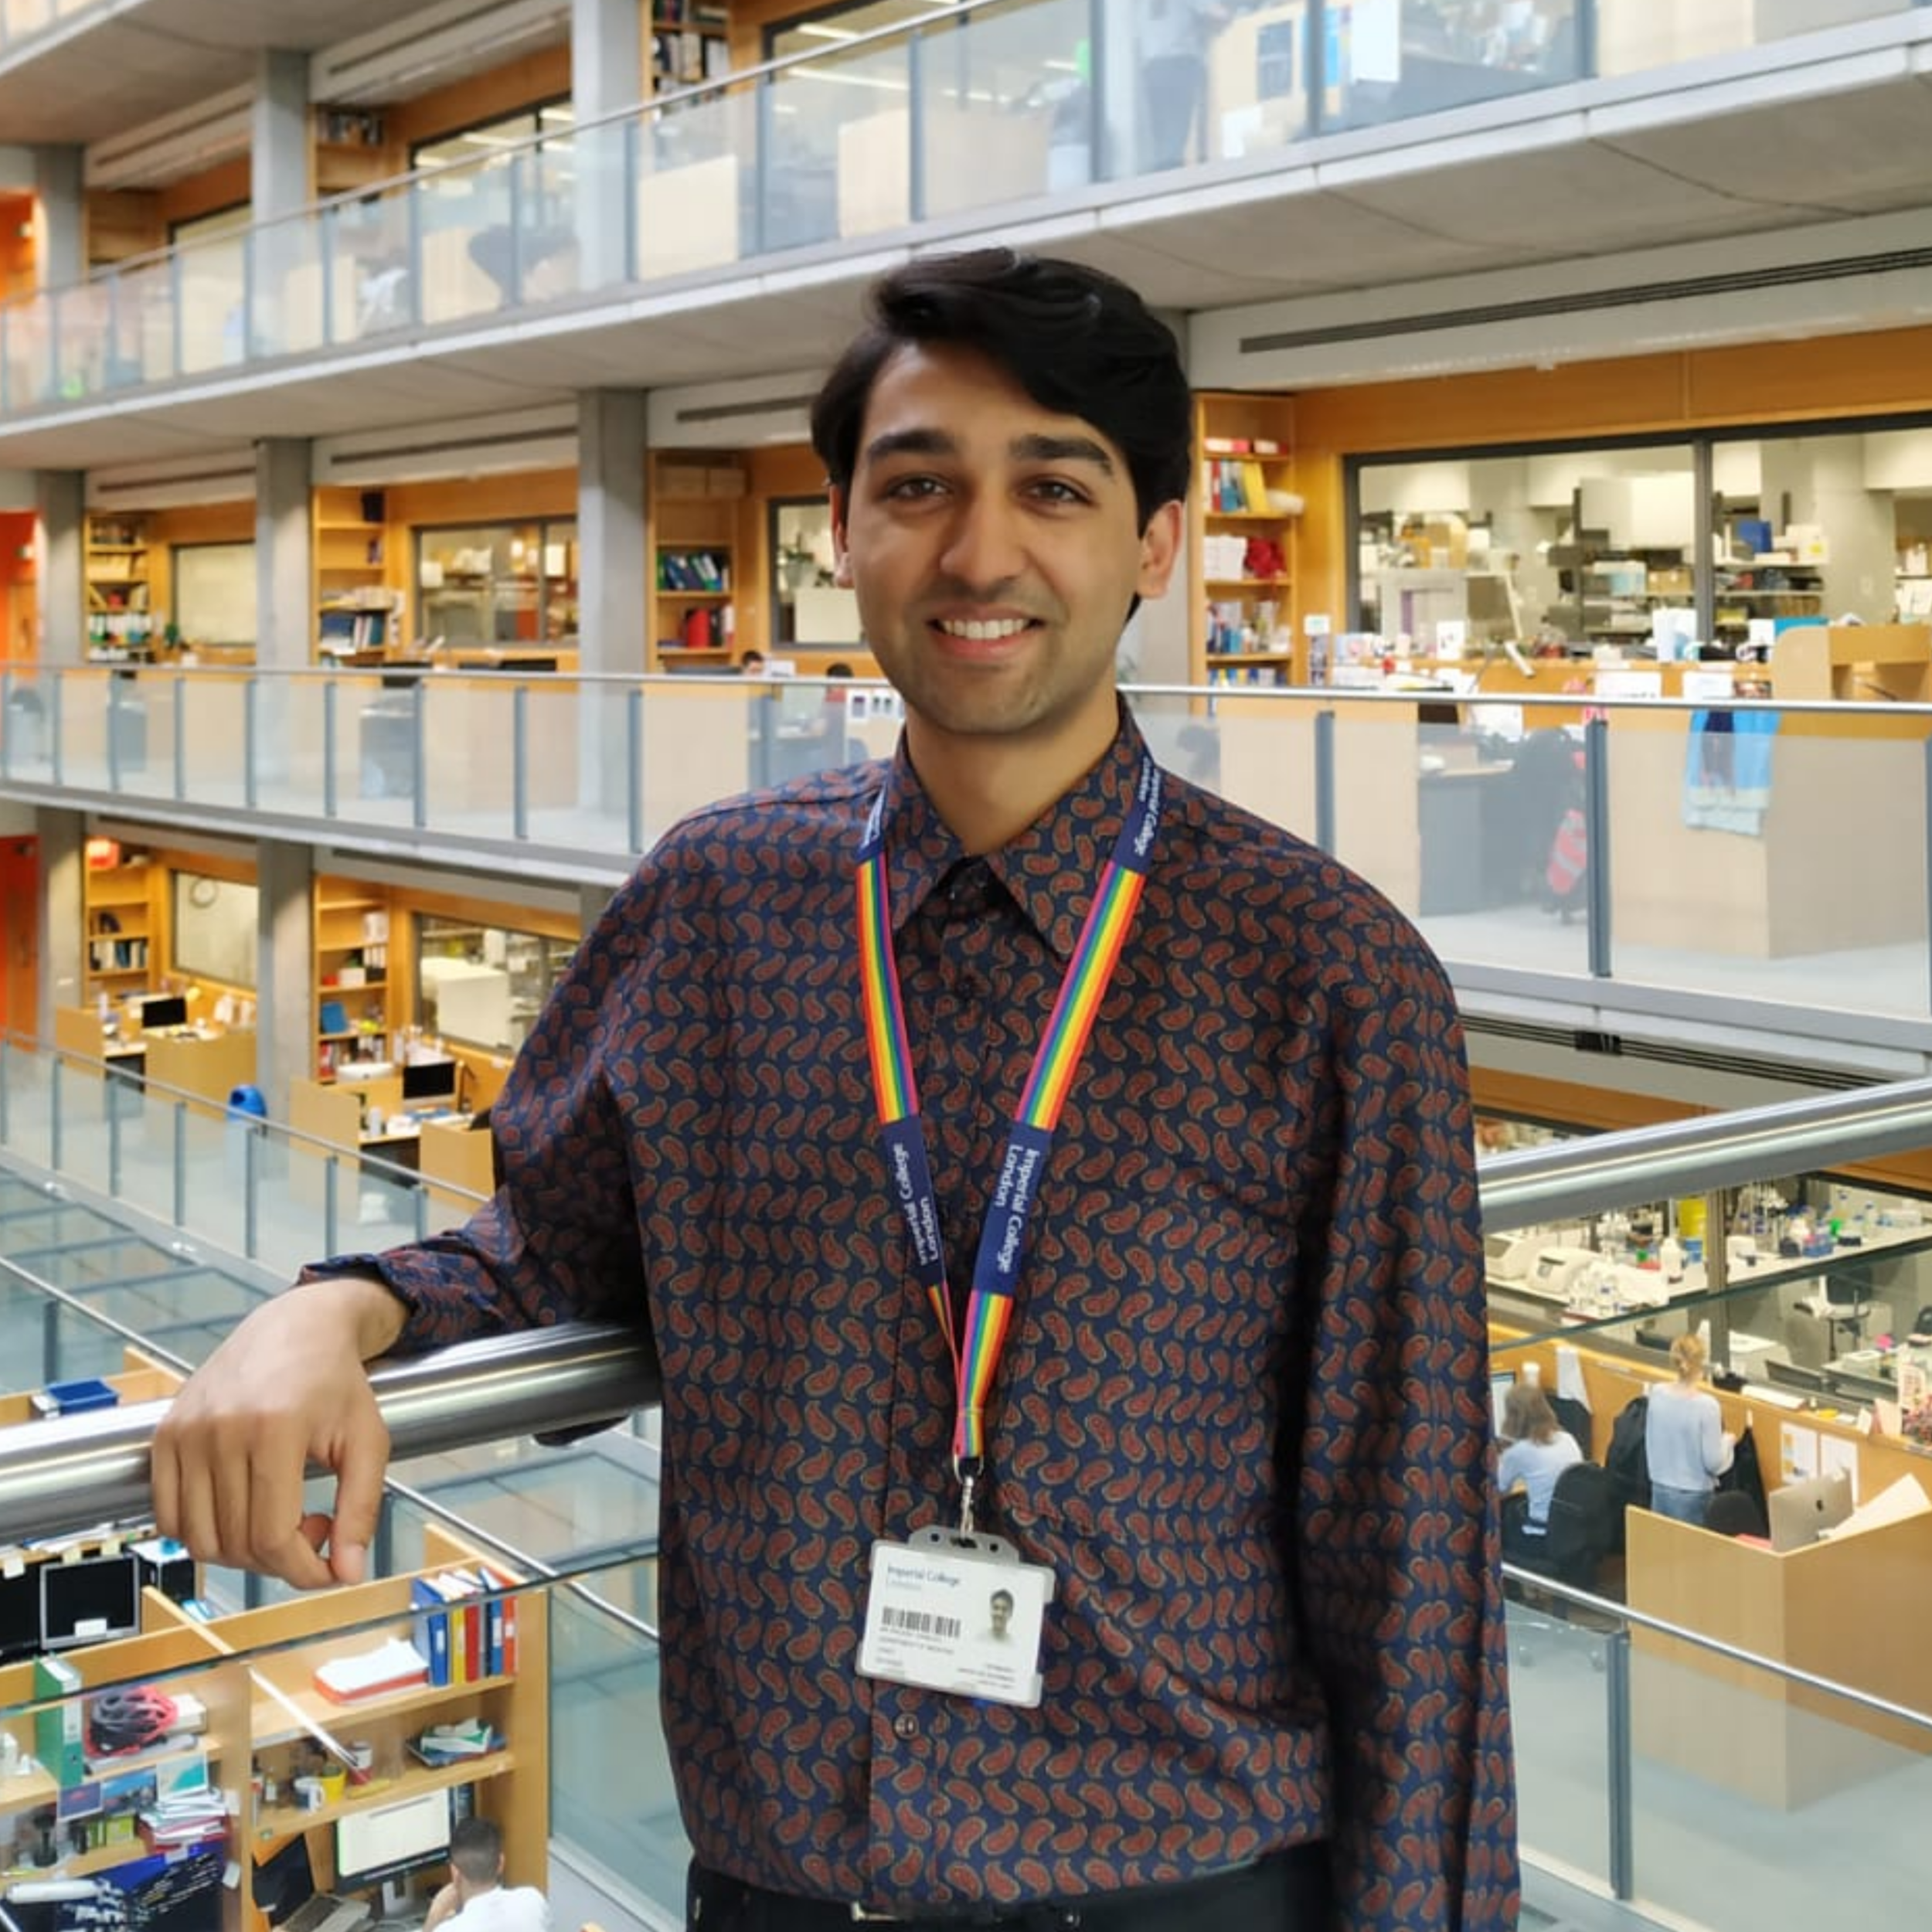 Kailash Ramlaul  Kailash is an Oxford Biochemistry graduate, now a research assistant and part-time PhD student at Imperial. He is using cryo-electron microscopy to structurally characterise protein complexes at the nexus of cell growth signalling.